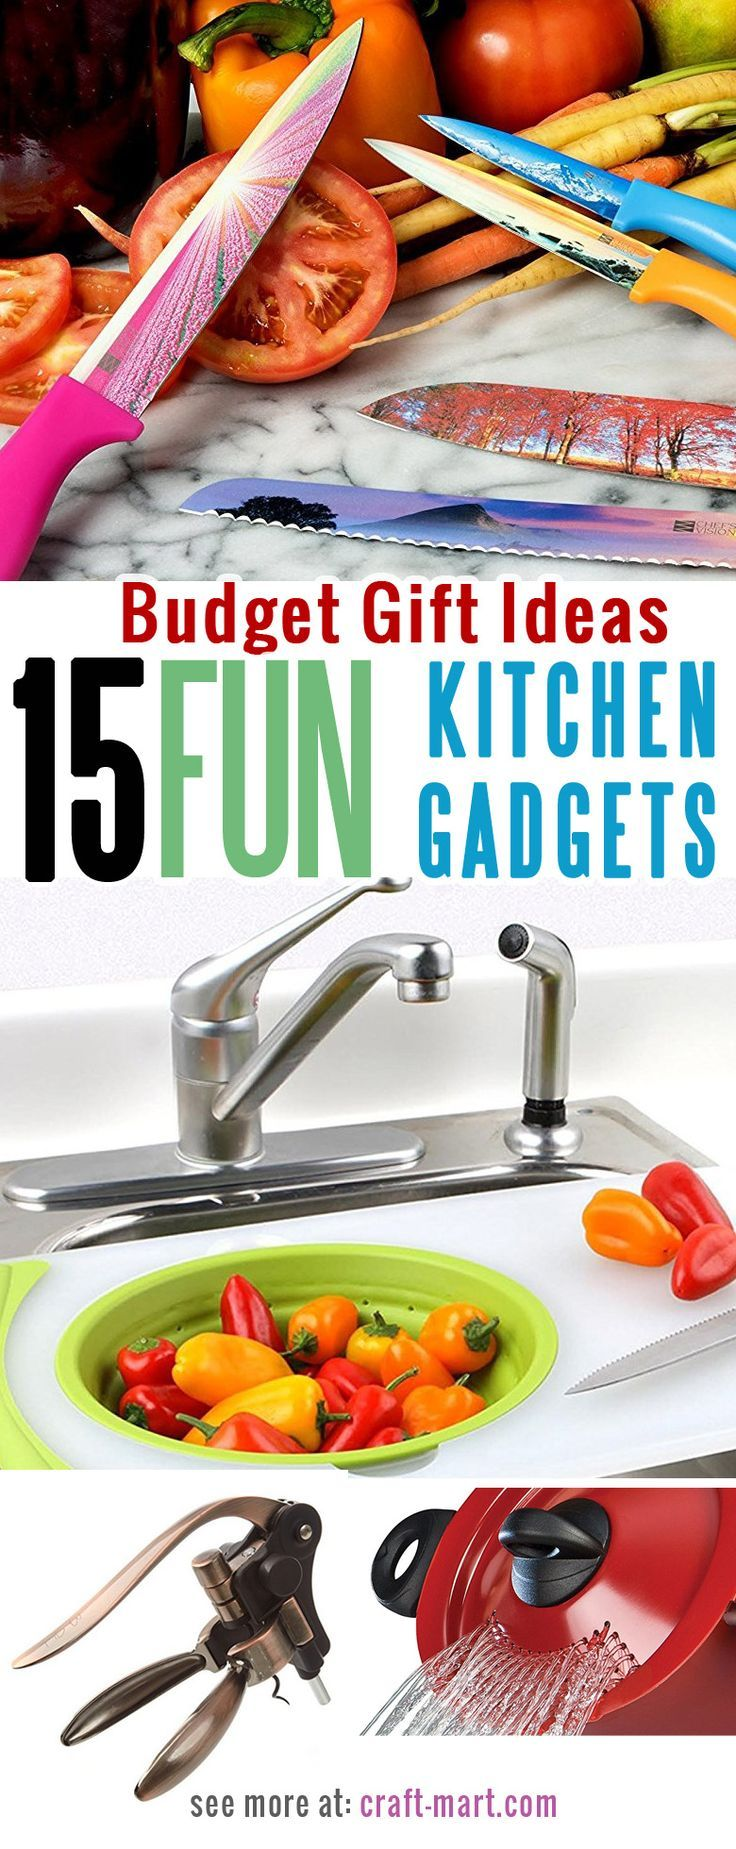 15 awesome kitchen gadgets gift ideas for any occasion cool kitchen gadgets kitchen gadgets on kitchen organization gadgets id=54954